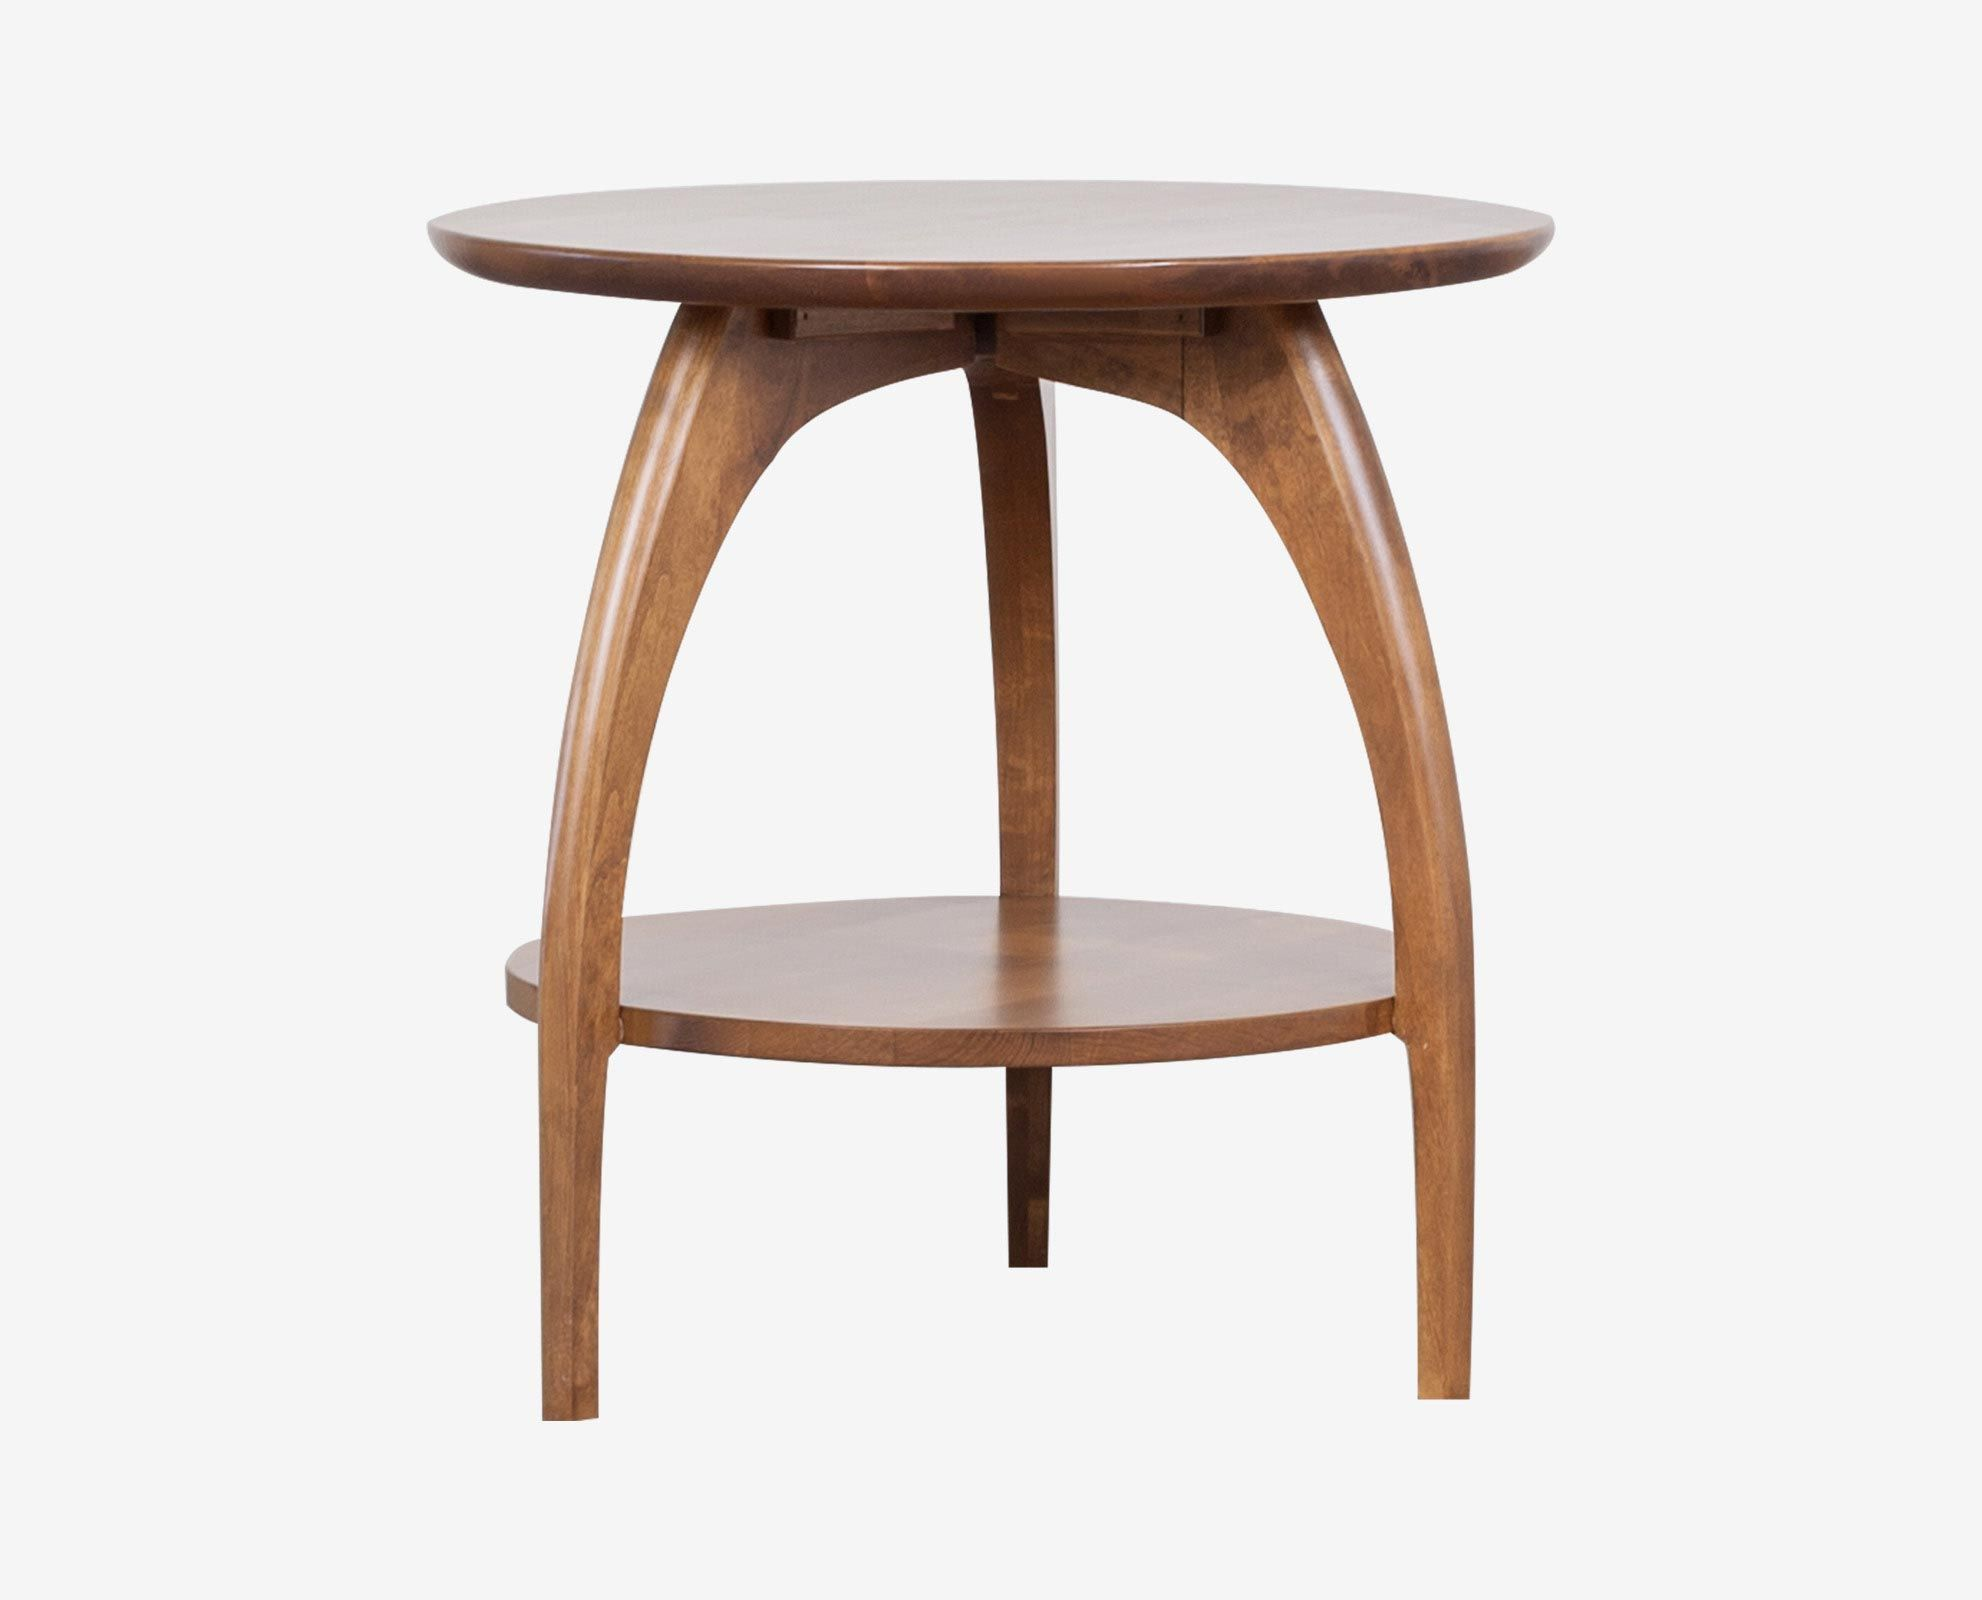 table scenic tibro round end accent tables scandinavian target designs dining light fixture metal glass bedside wine rack design room essentials pottery barn canvas umbrella